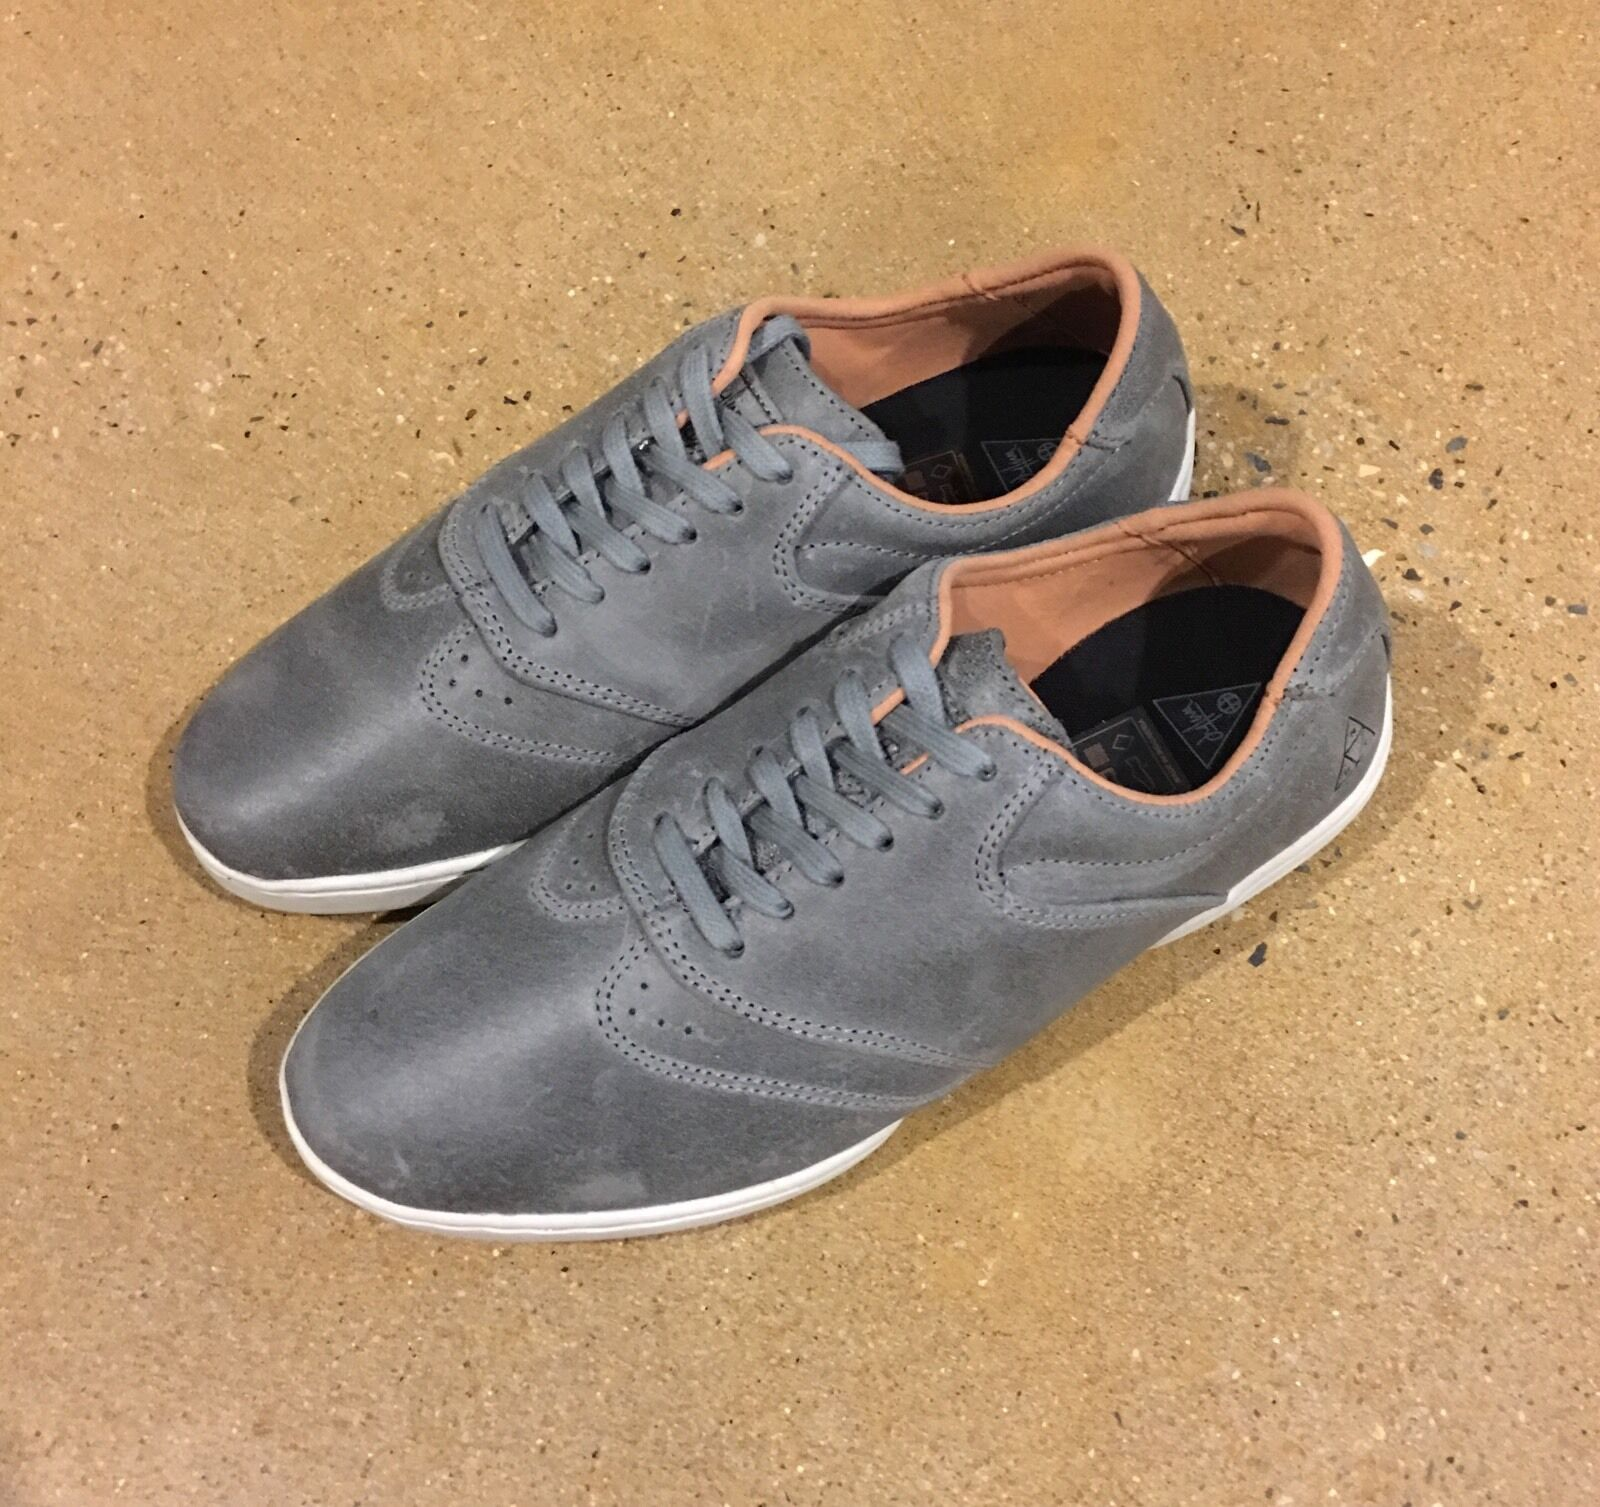 Huf Dylan Rieder Size 7 US F*cking Awesome Rare Skate Shoes Sneakers Scarpe classiche da uomo